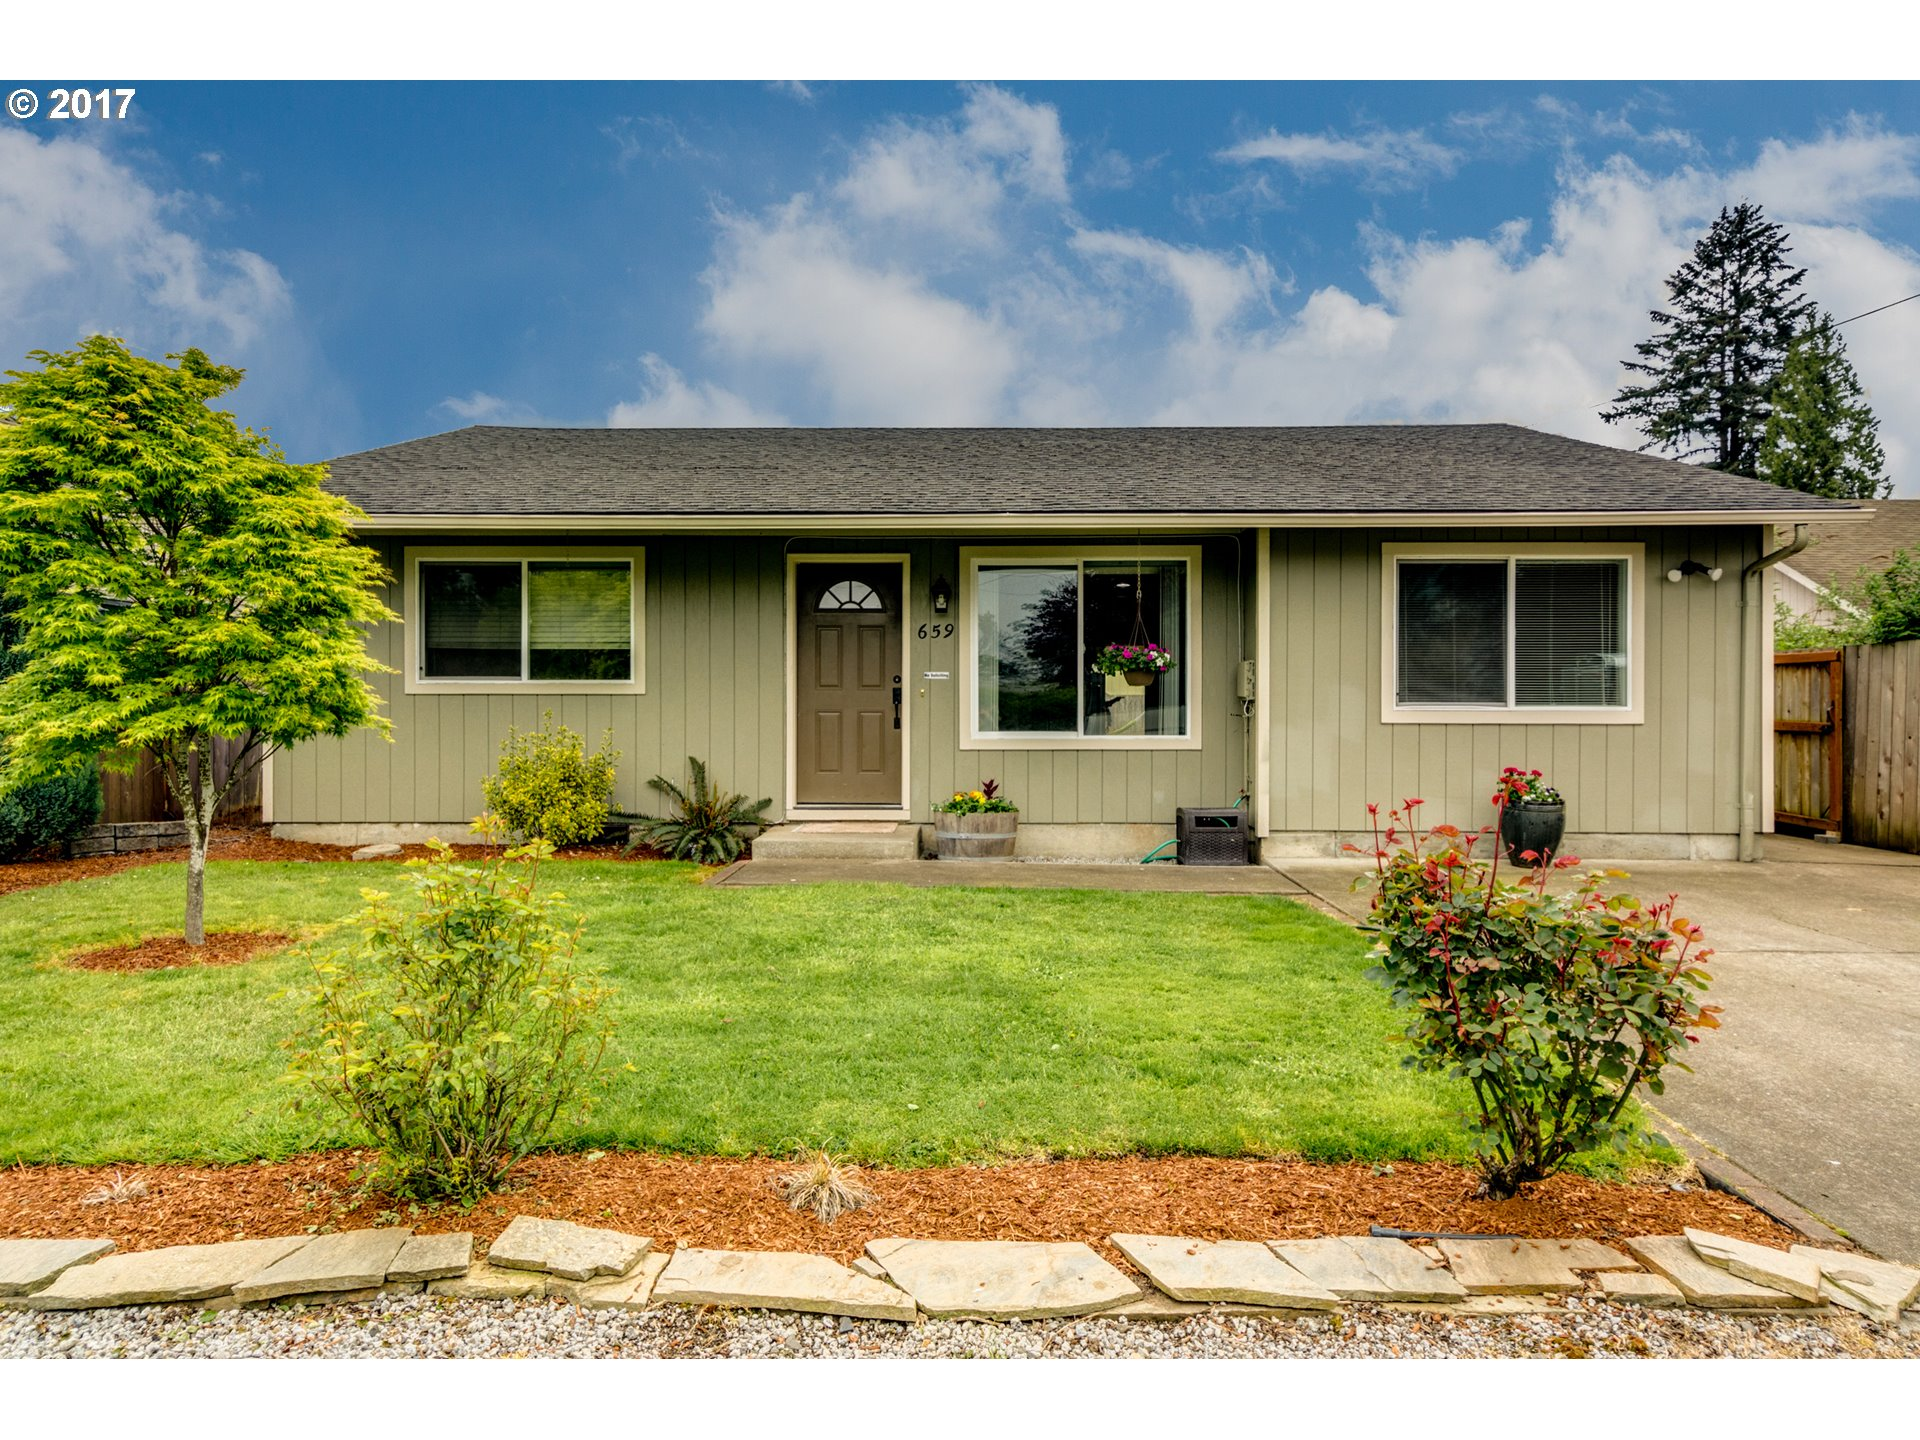 659 SE 11TH ST, Dundee, OR 97115